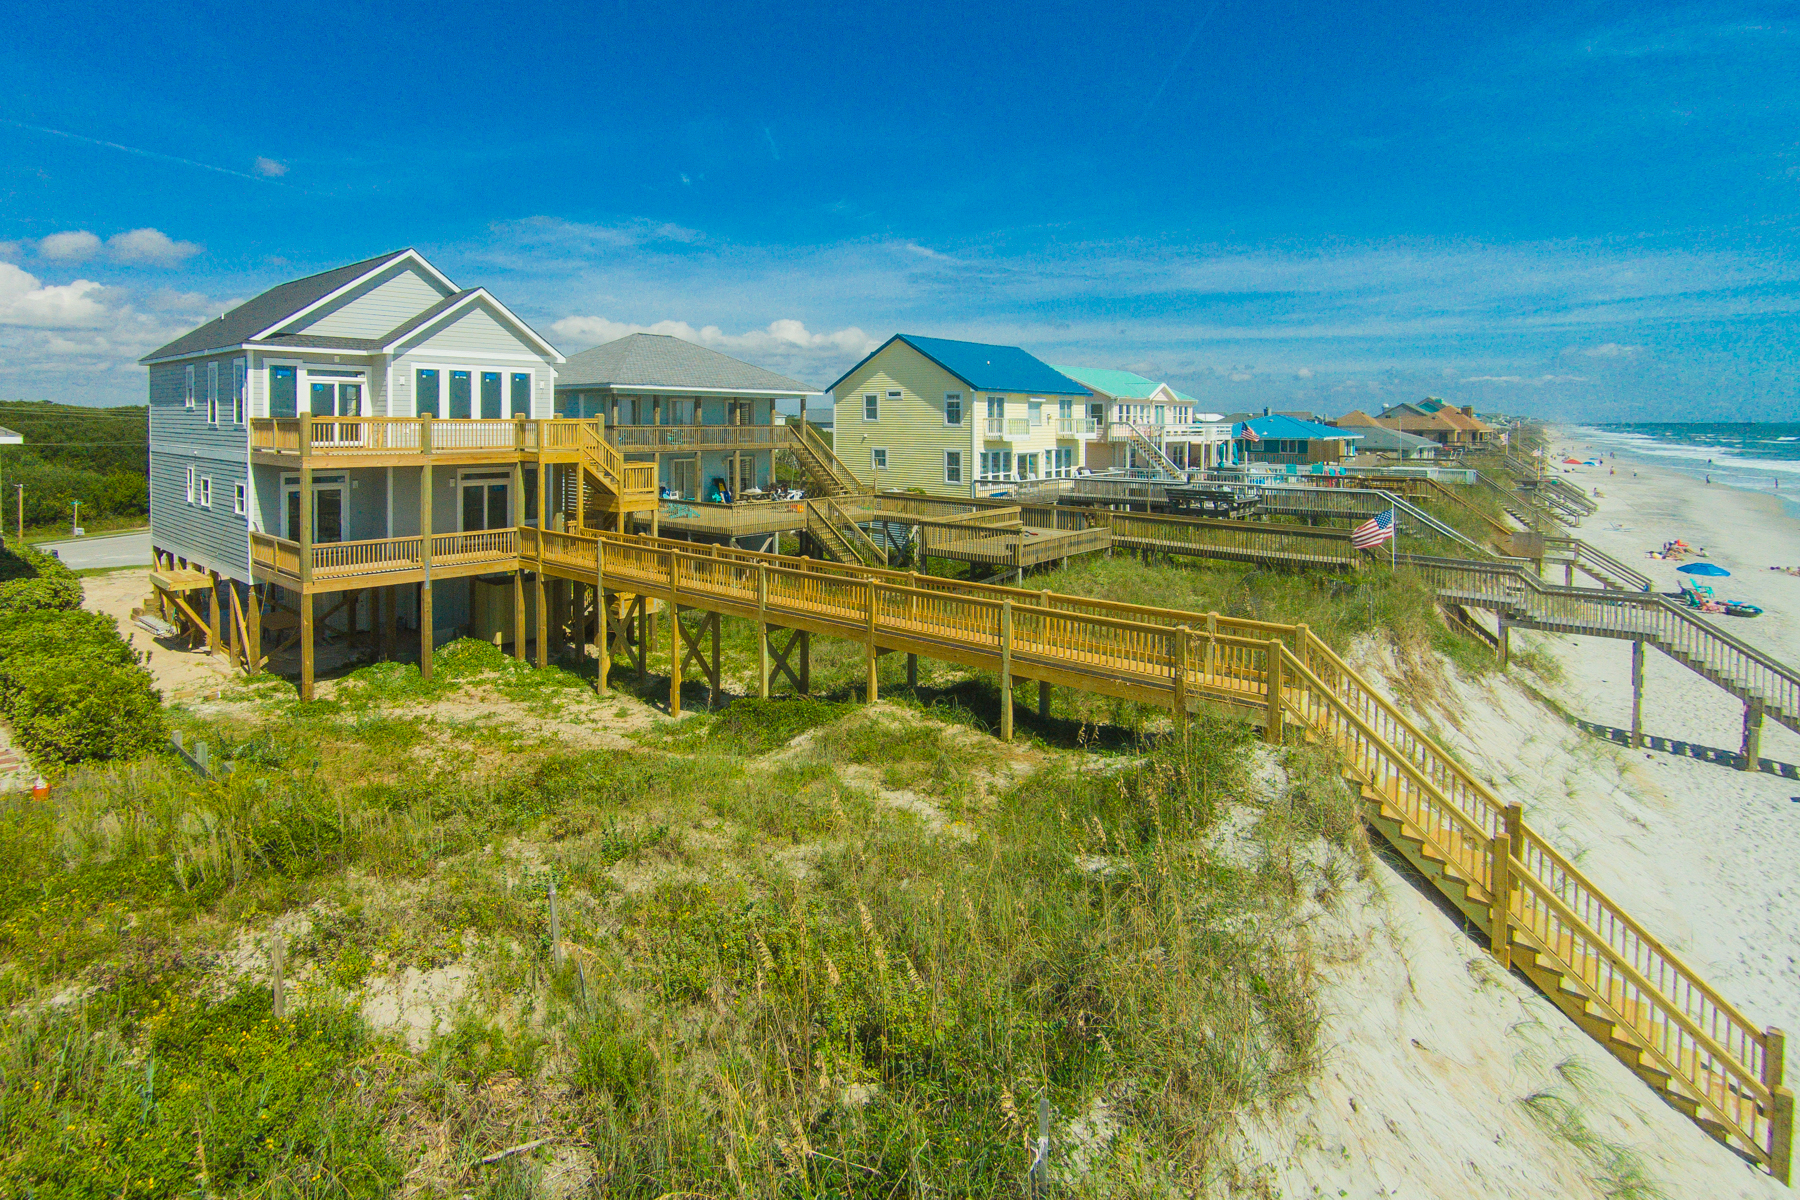 独户住宅 为 销售 在 Oceanfront & Inspirational Coastal Home 1212 S Shore Dr, Surf City, 北卡罗来纳州, 28445 美国